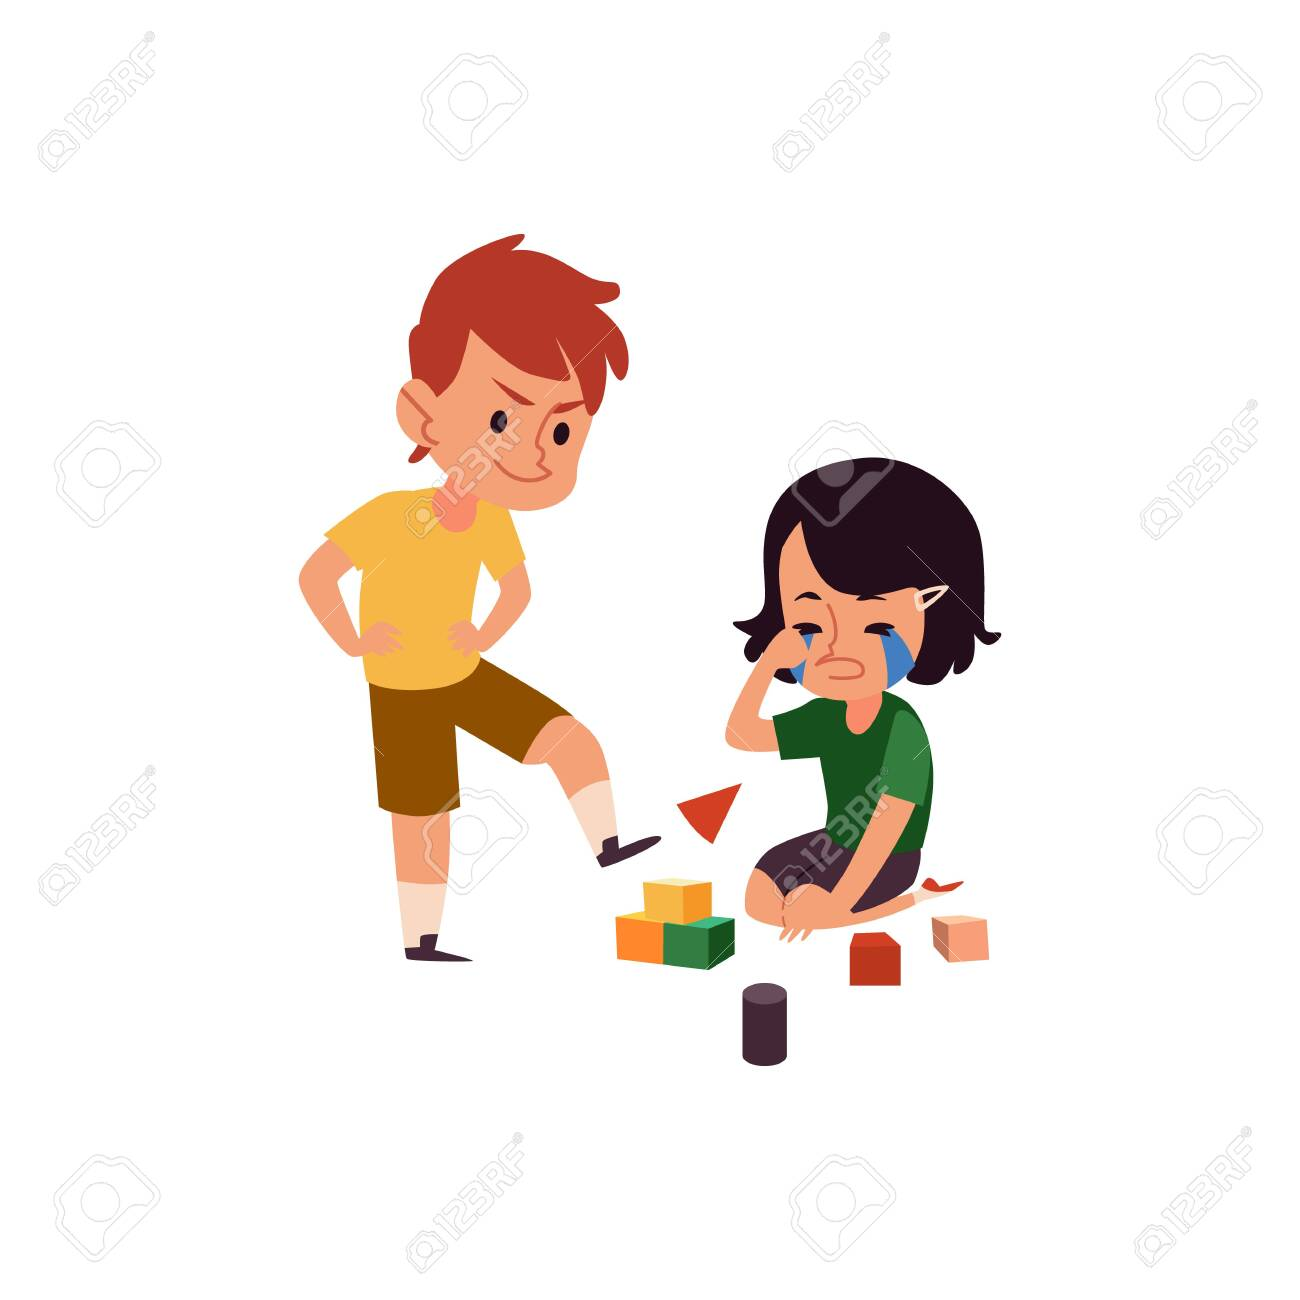 Boy with bad behavior bullying crying girl, cartoon kid kicking his sister's toy cubes, children in conflict playing with blocks - 125387600